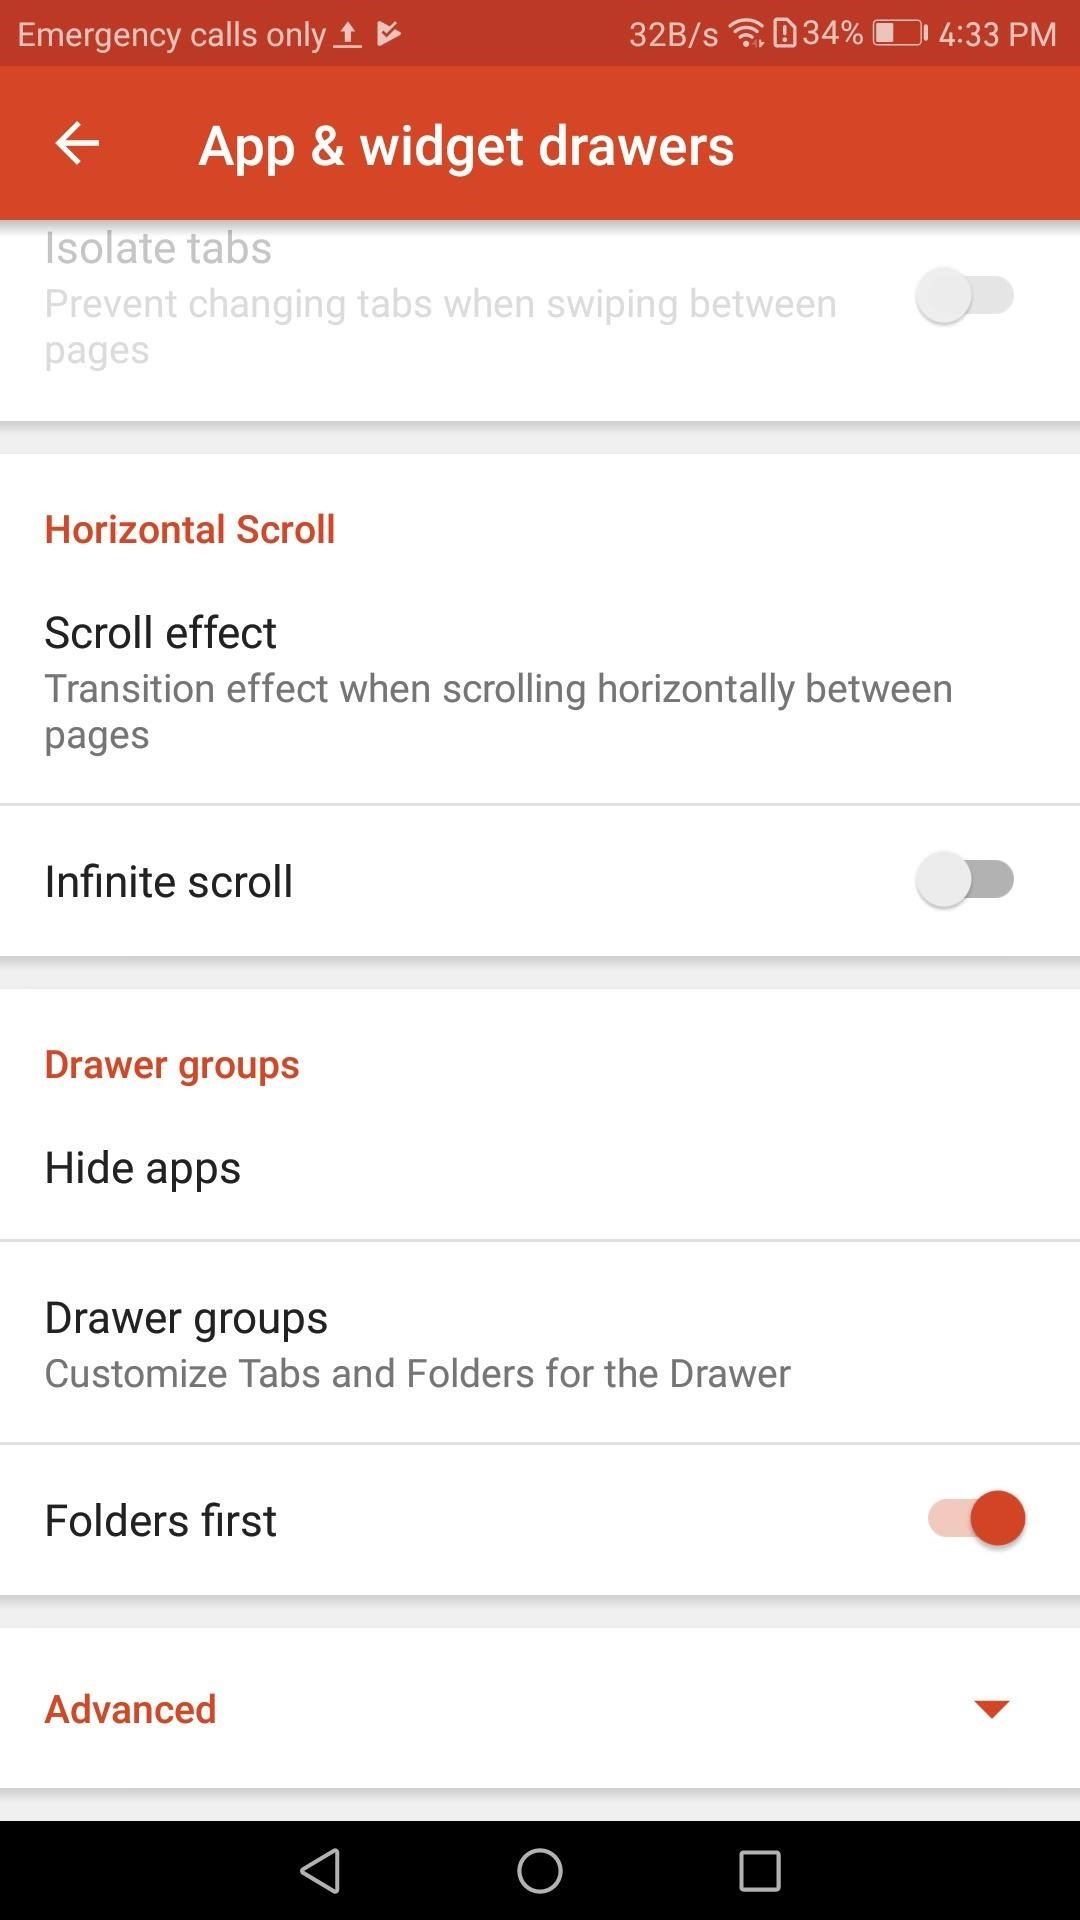 Nova Launcher 101: How to Hide Apps to Remove Icons & Free Up Space